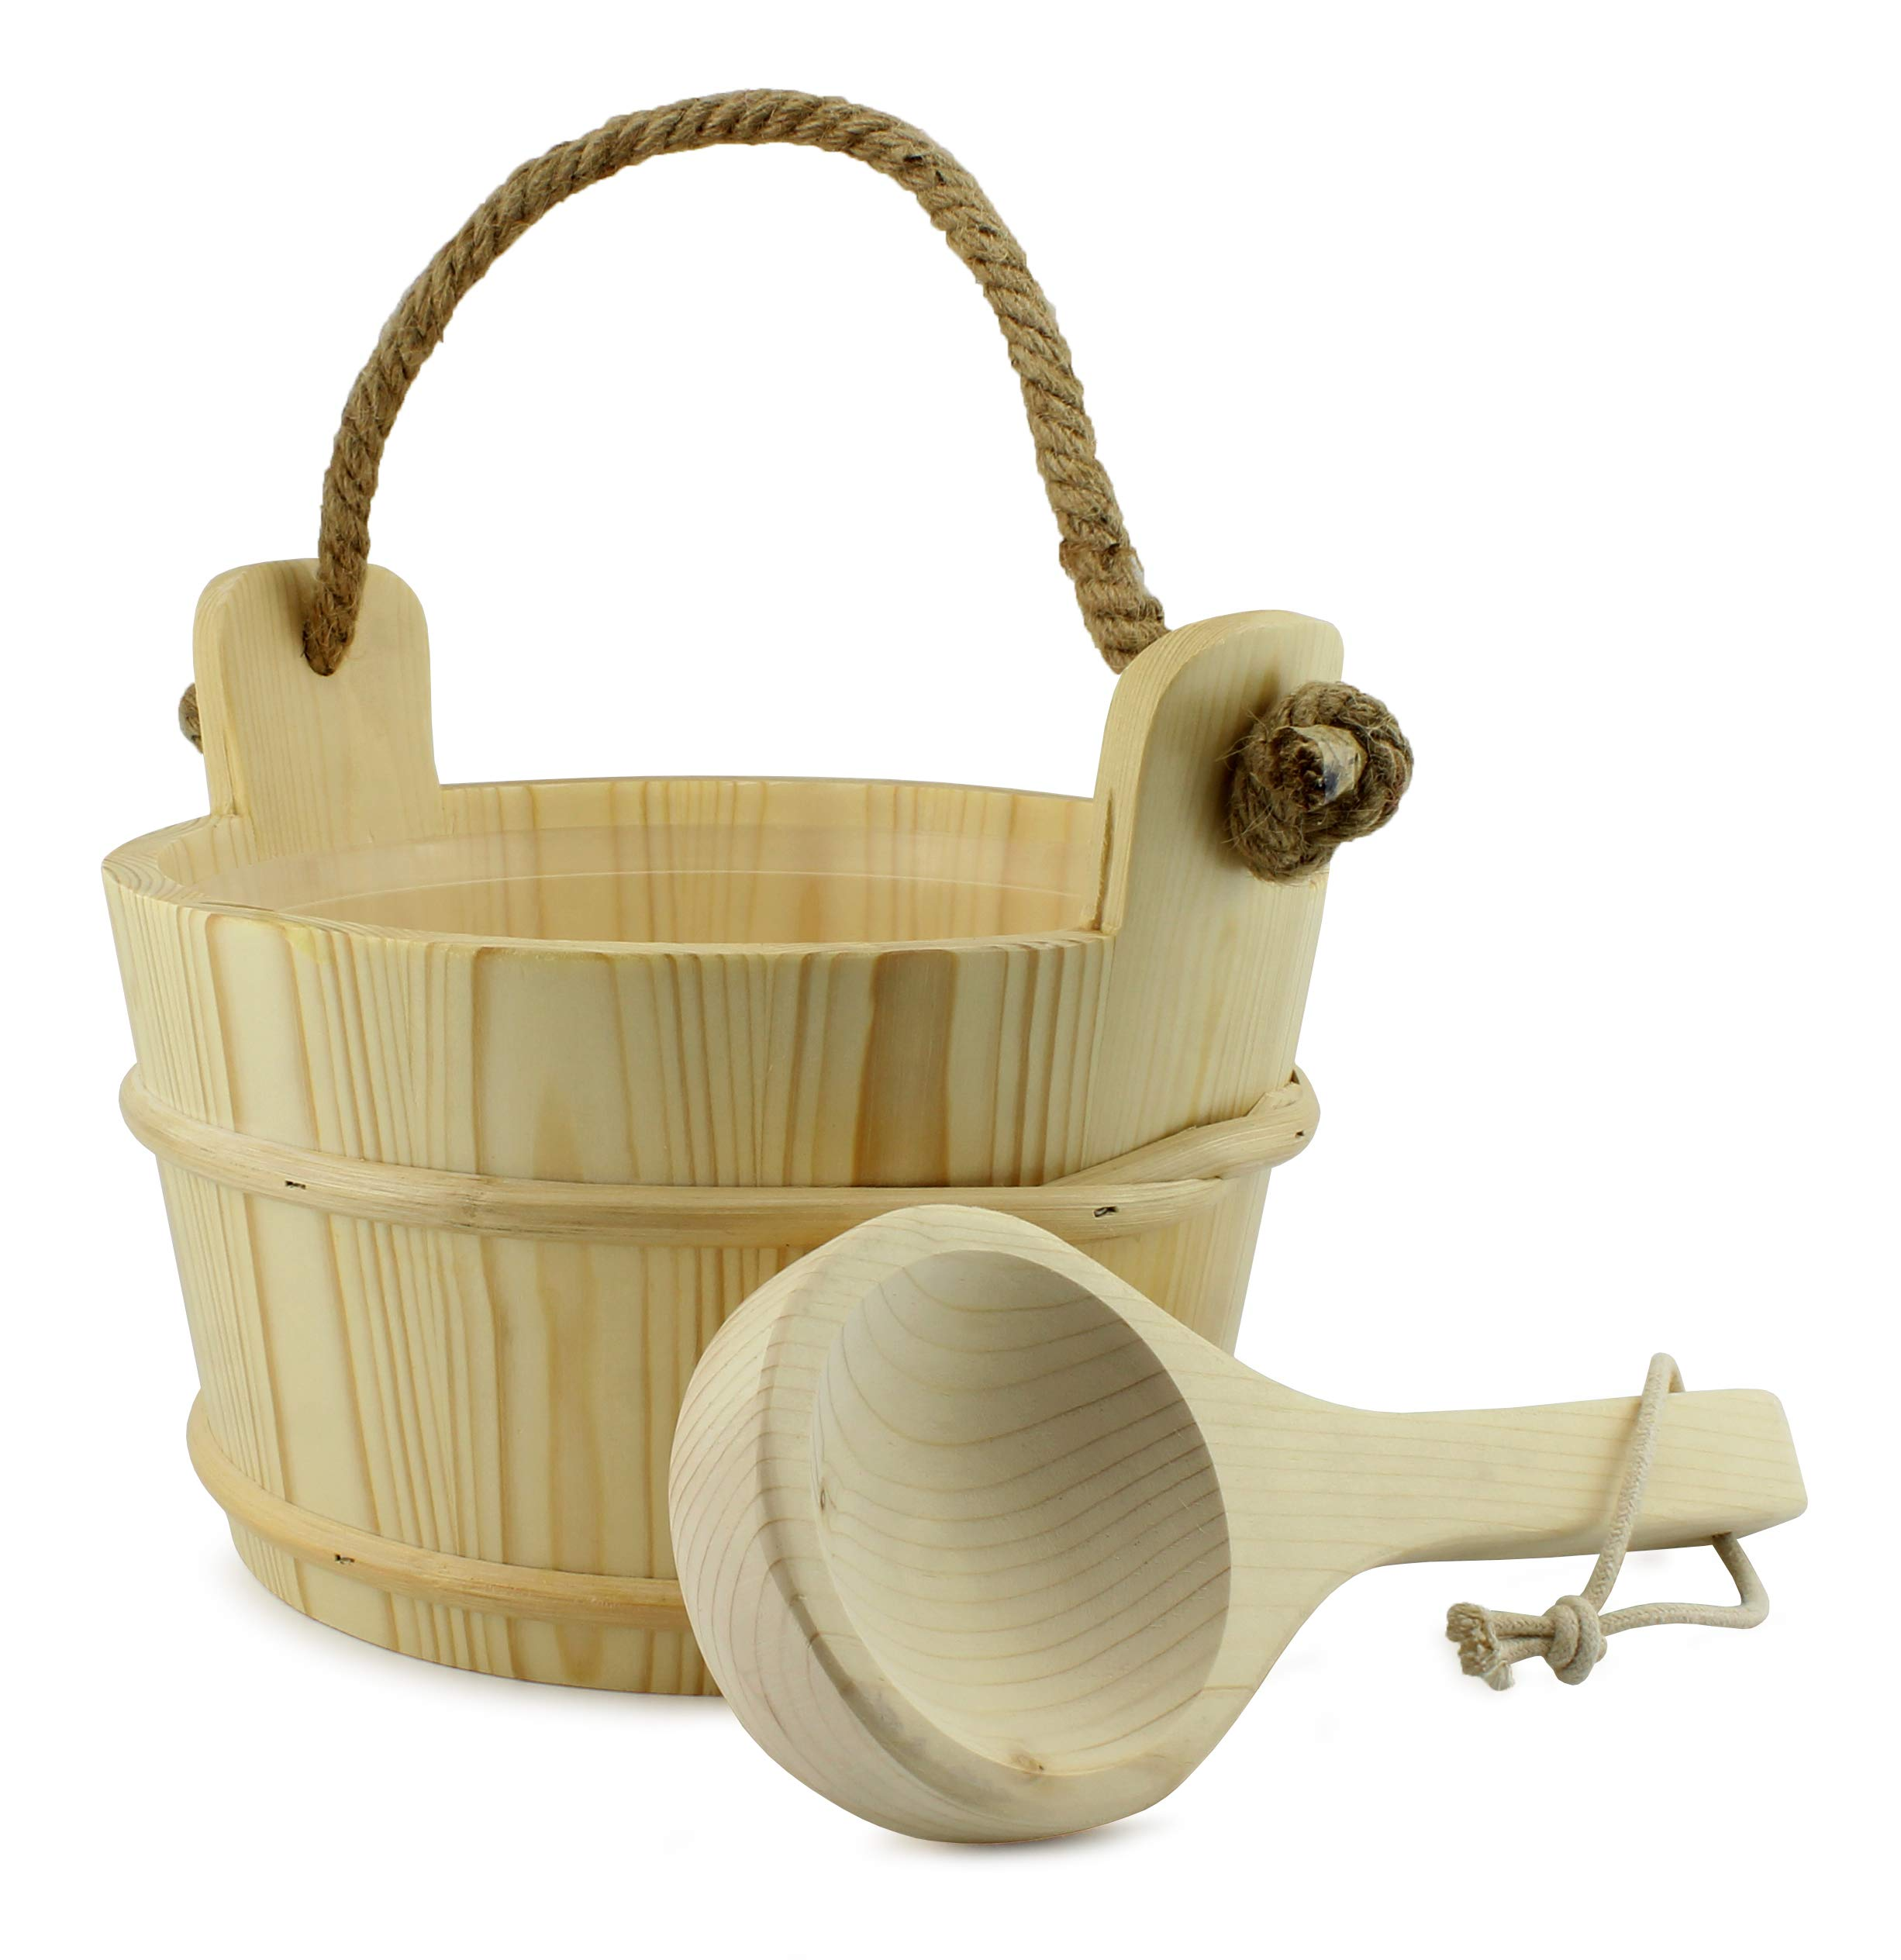 Cornucopia Wooden Sauna Bucket with Ladle, Pinewood Pail with Rope Handle and Liner with Matching Wooden Spoon by Cornucopia Brands